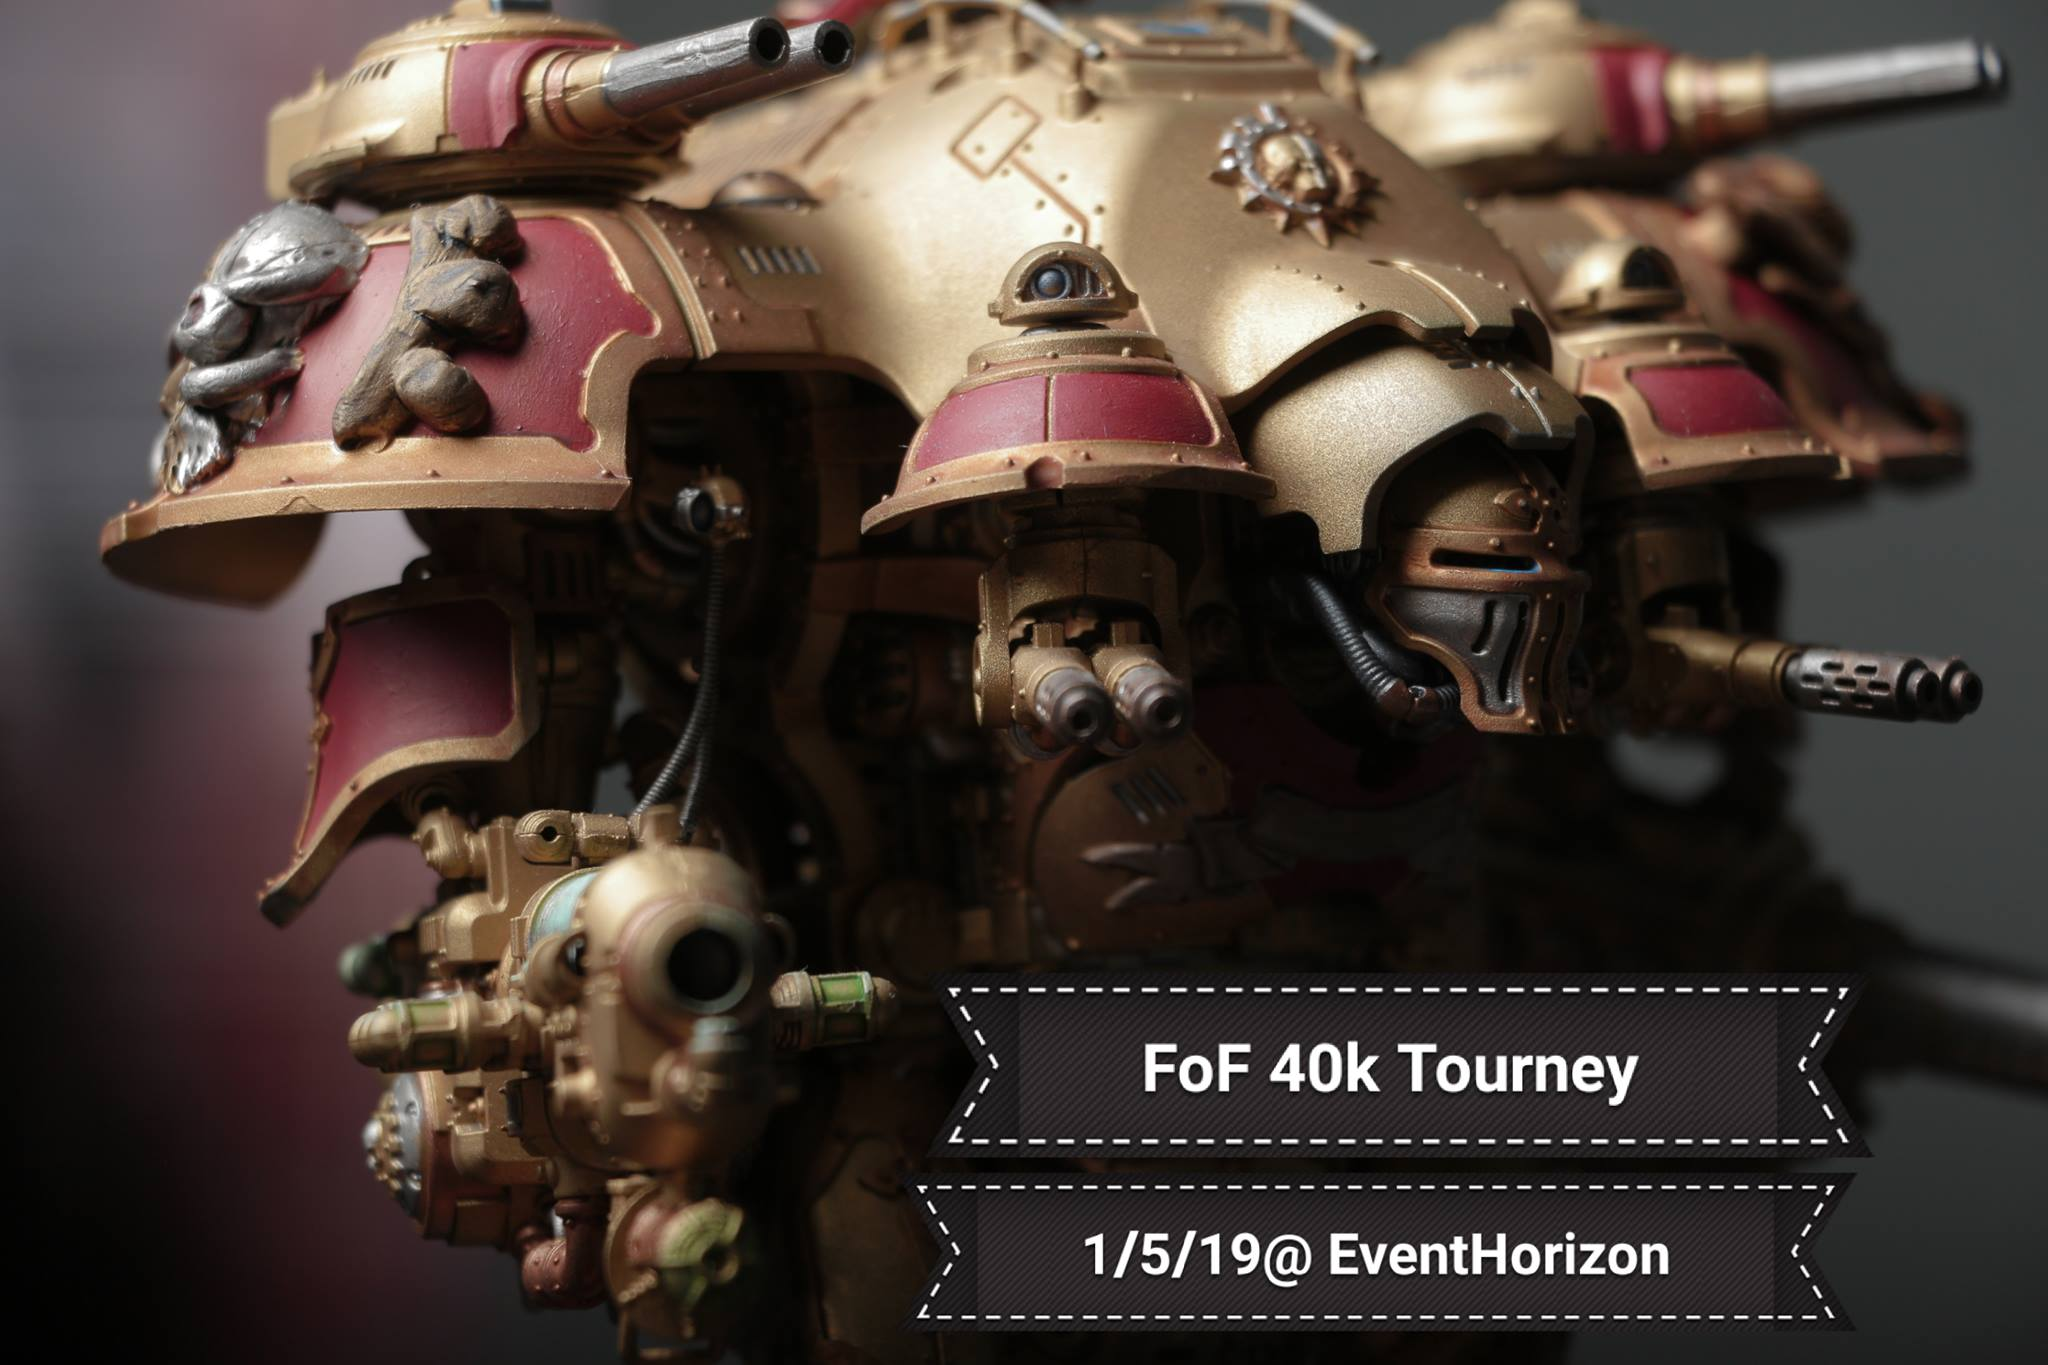 FoF 40k Tourney Bolter'n the new year header